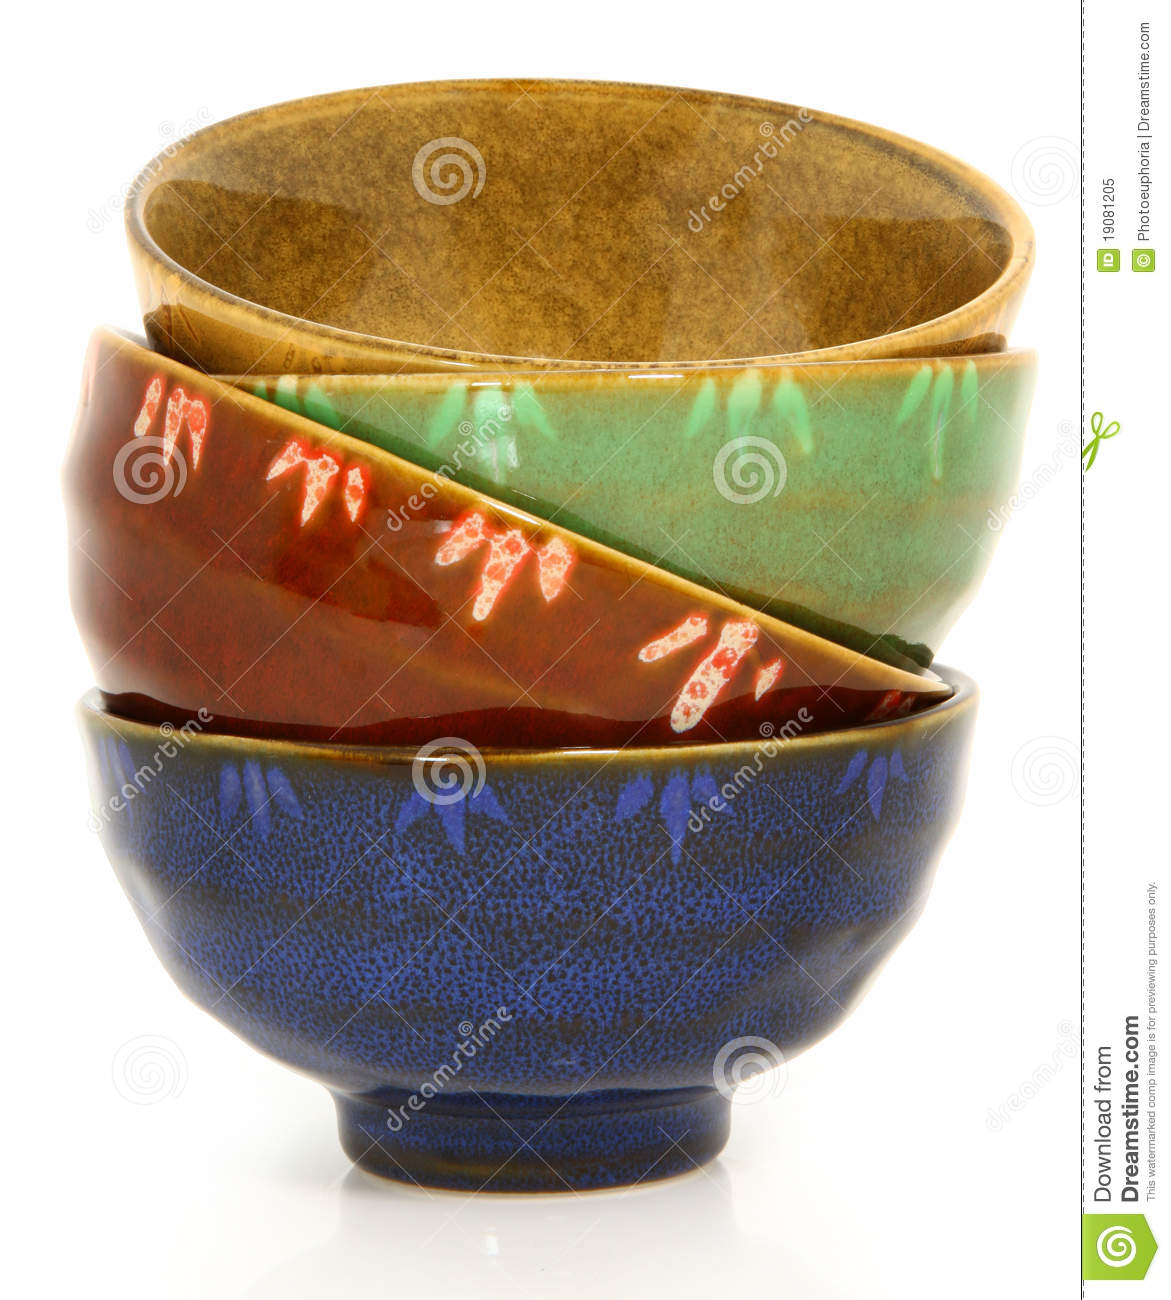 Asian Ceramic Bowls 22